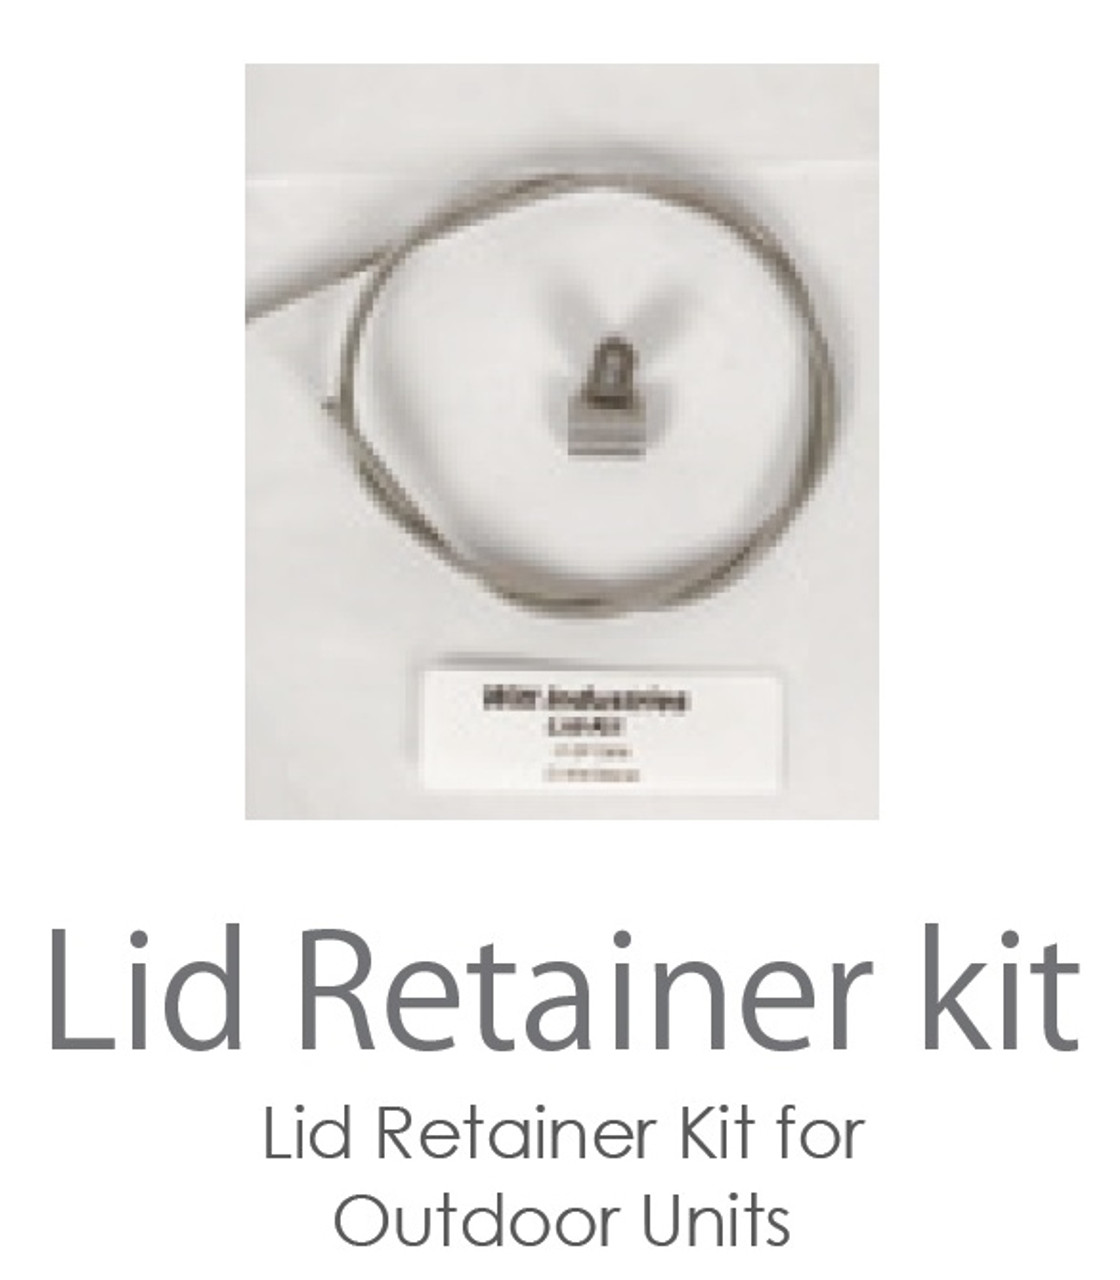 Lid Cable Kit